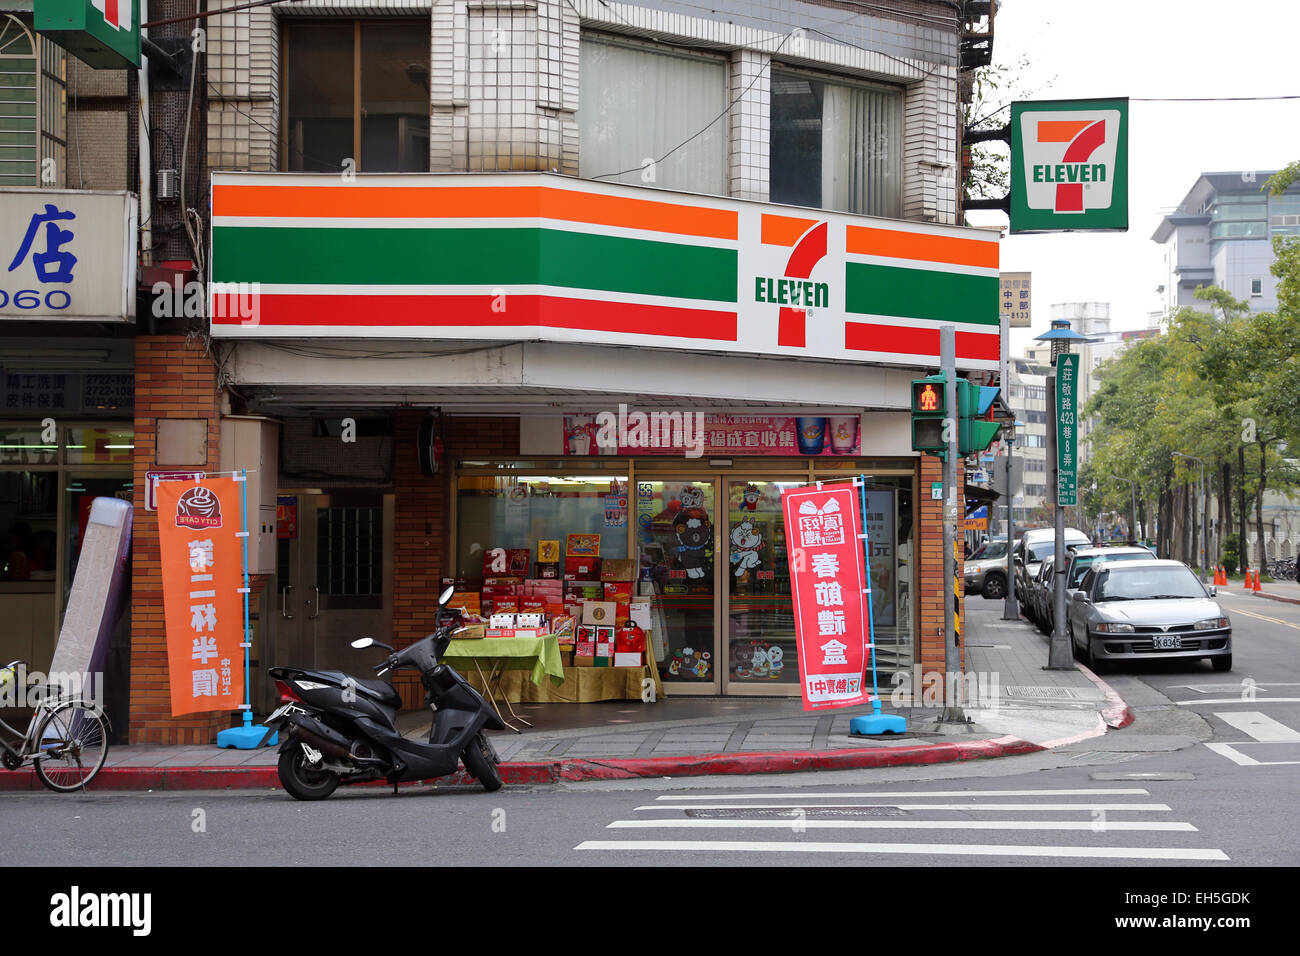 """7 eleven taiwan At 7-eleven, our purpose and mission is to make life a little easier for our guests by being where they need us, whenever they need us with our passion and determination, pcsc aims to provide holistic convenience services and help consumers lead new lifestyles of high quality """"whatever bothers ."""